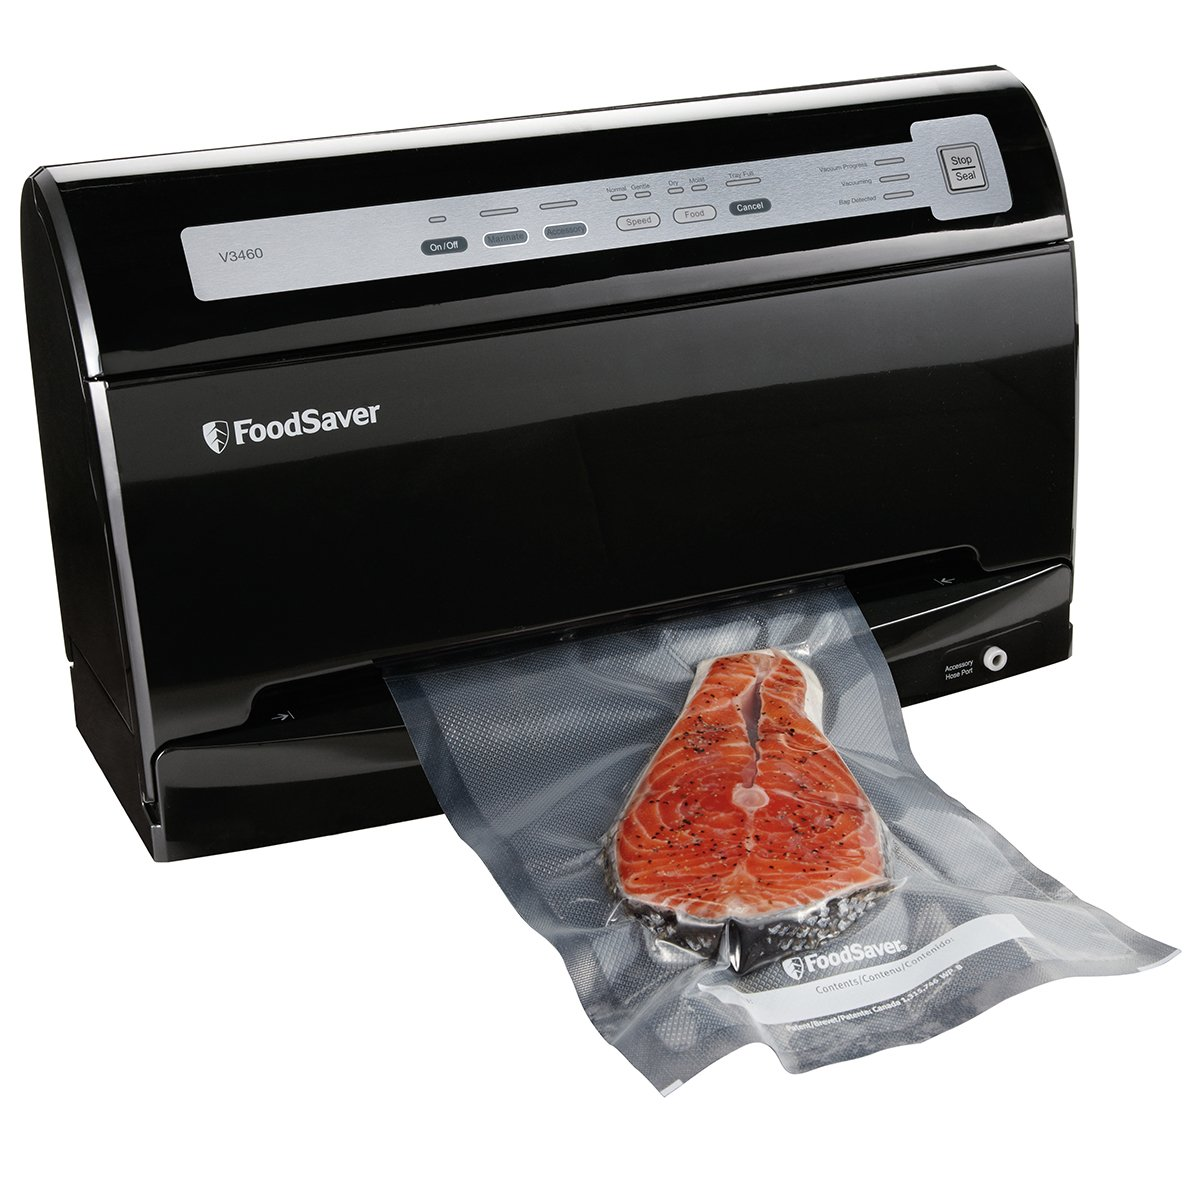 FoodSaver V3460 Automatic Vacuum Sealing System by FoodSaver